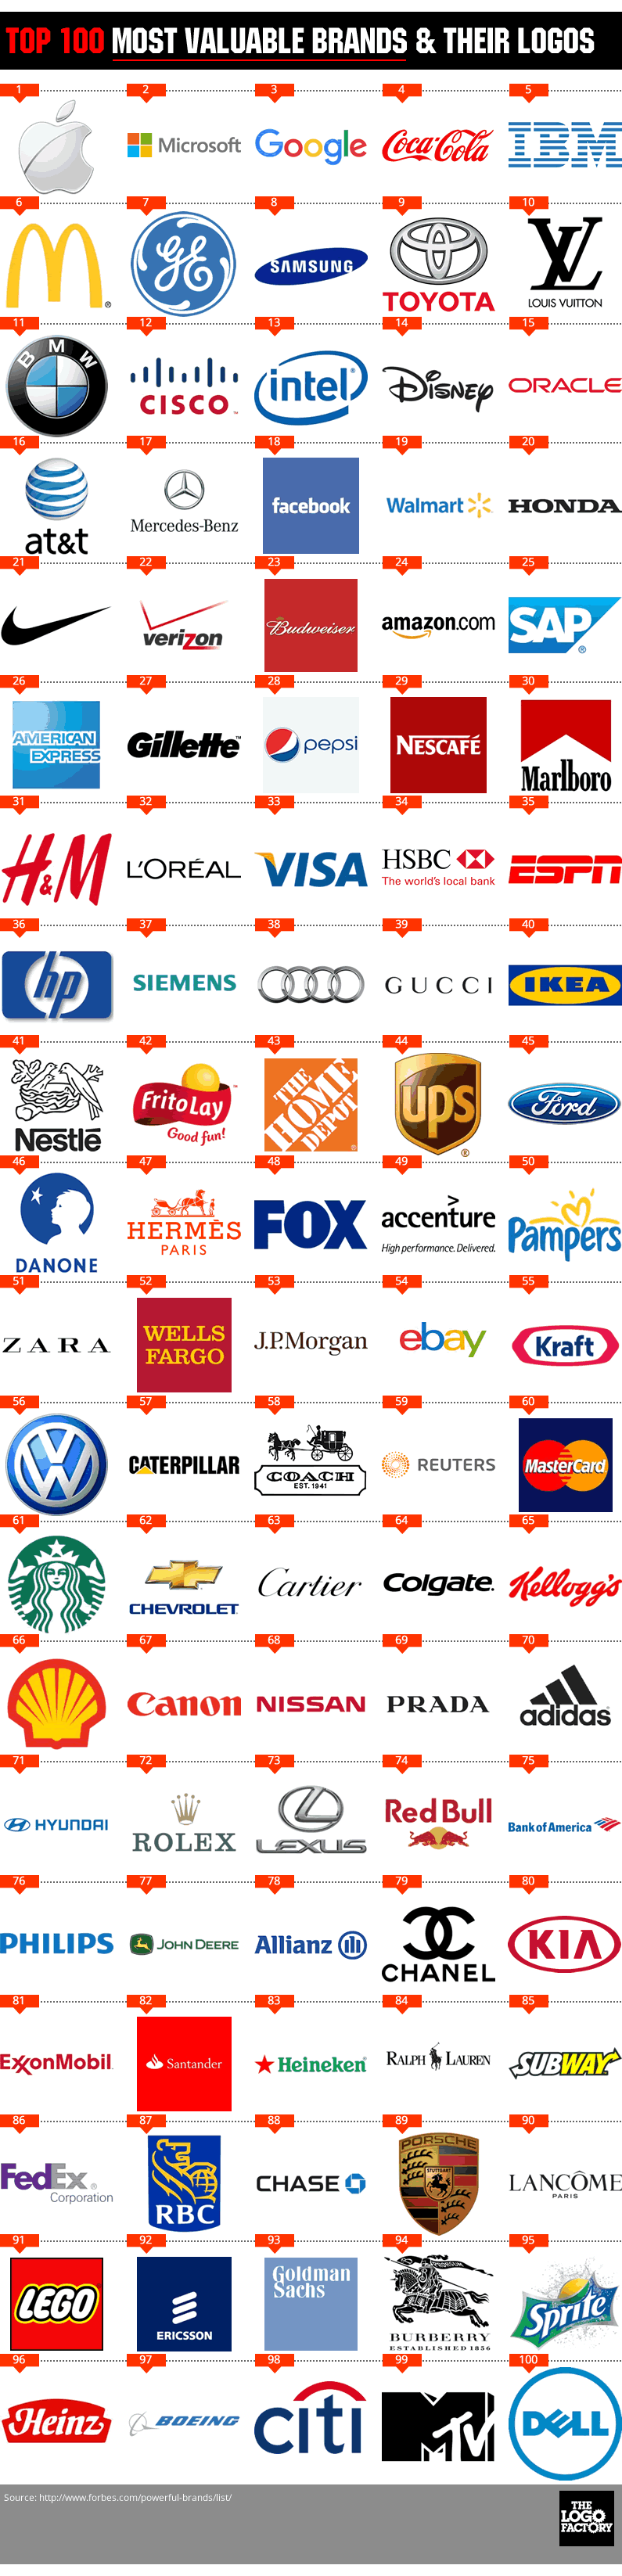 According To Forbes These Are The Top Hundred Most Valuable Brands Weve Assembled Their Logos See What We Can Learn A Bar Graph And Everything